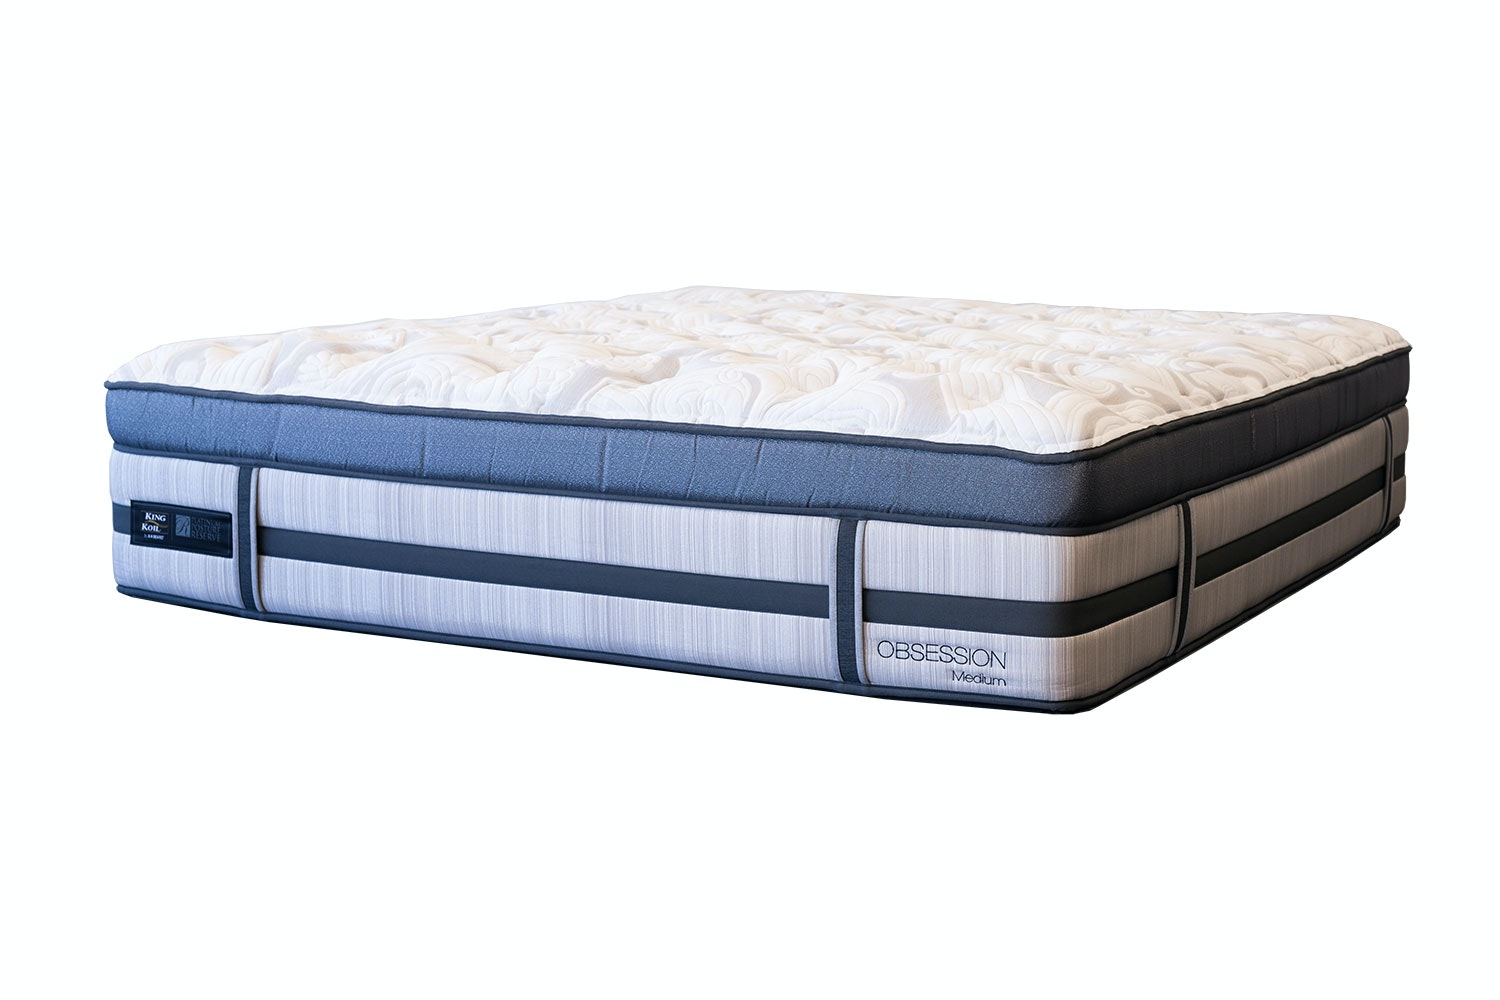 Obsession Medium Long Single Mattress by King Koil